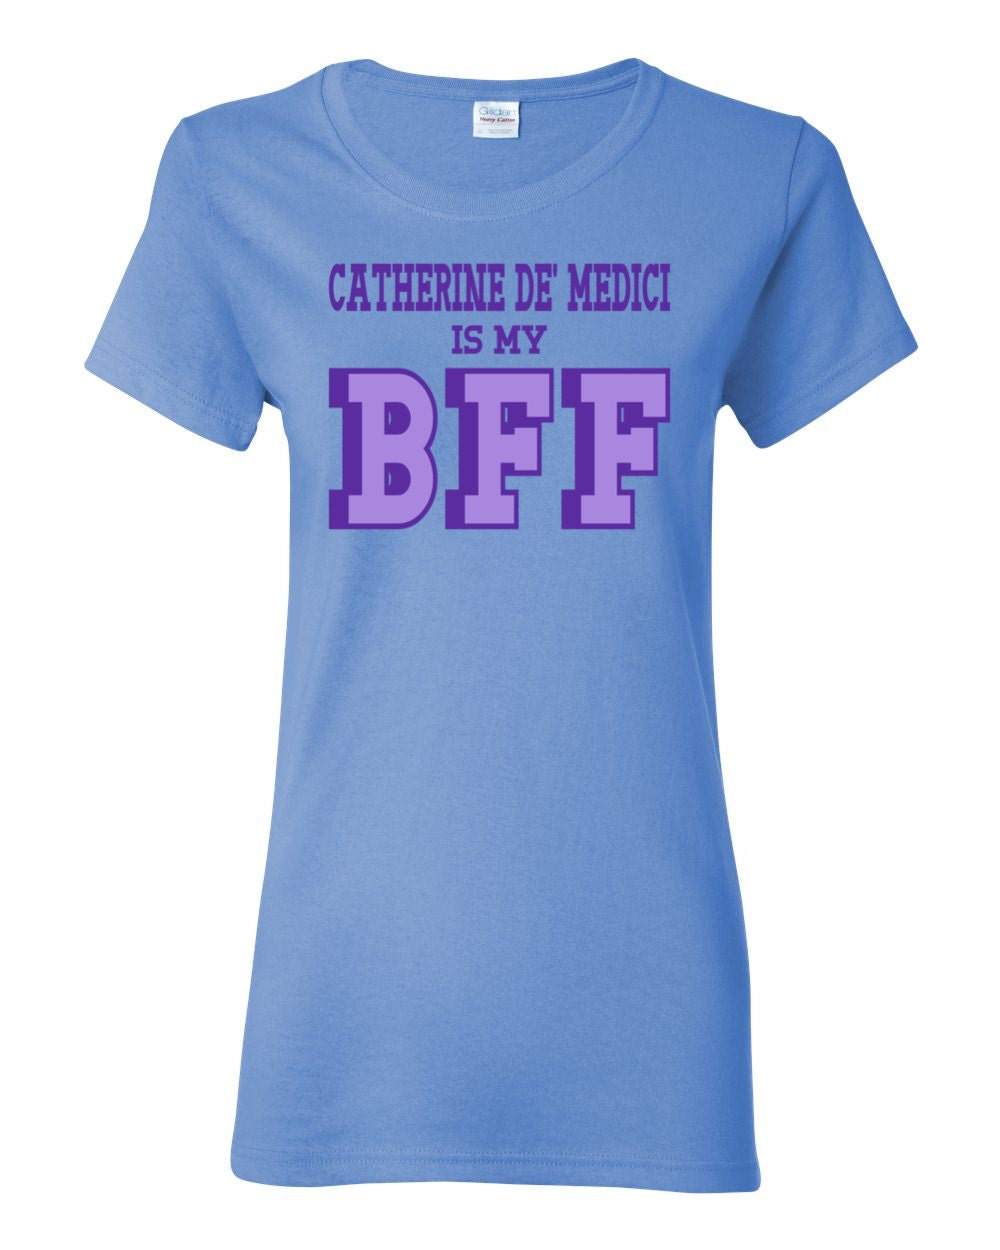 Great Women of History - Catherine de' Medici is my BFF Womens History T-shirt